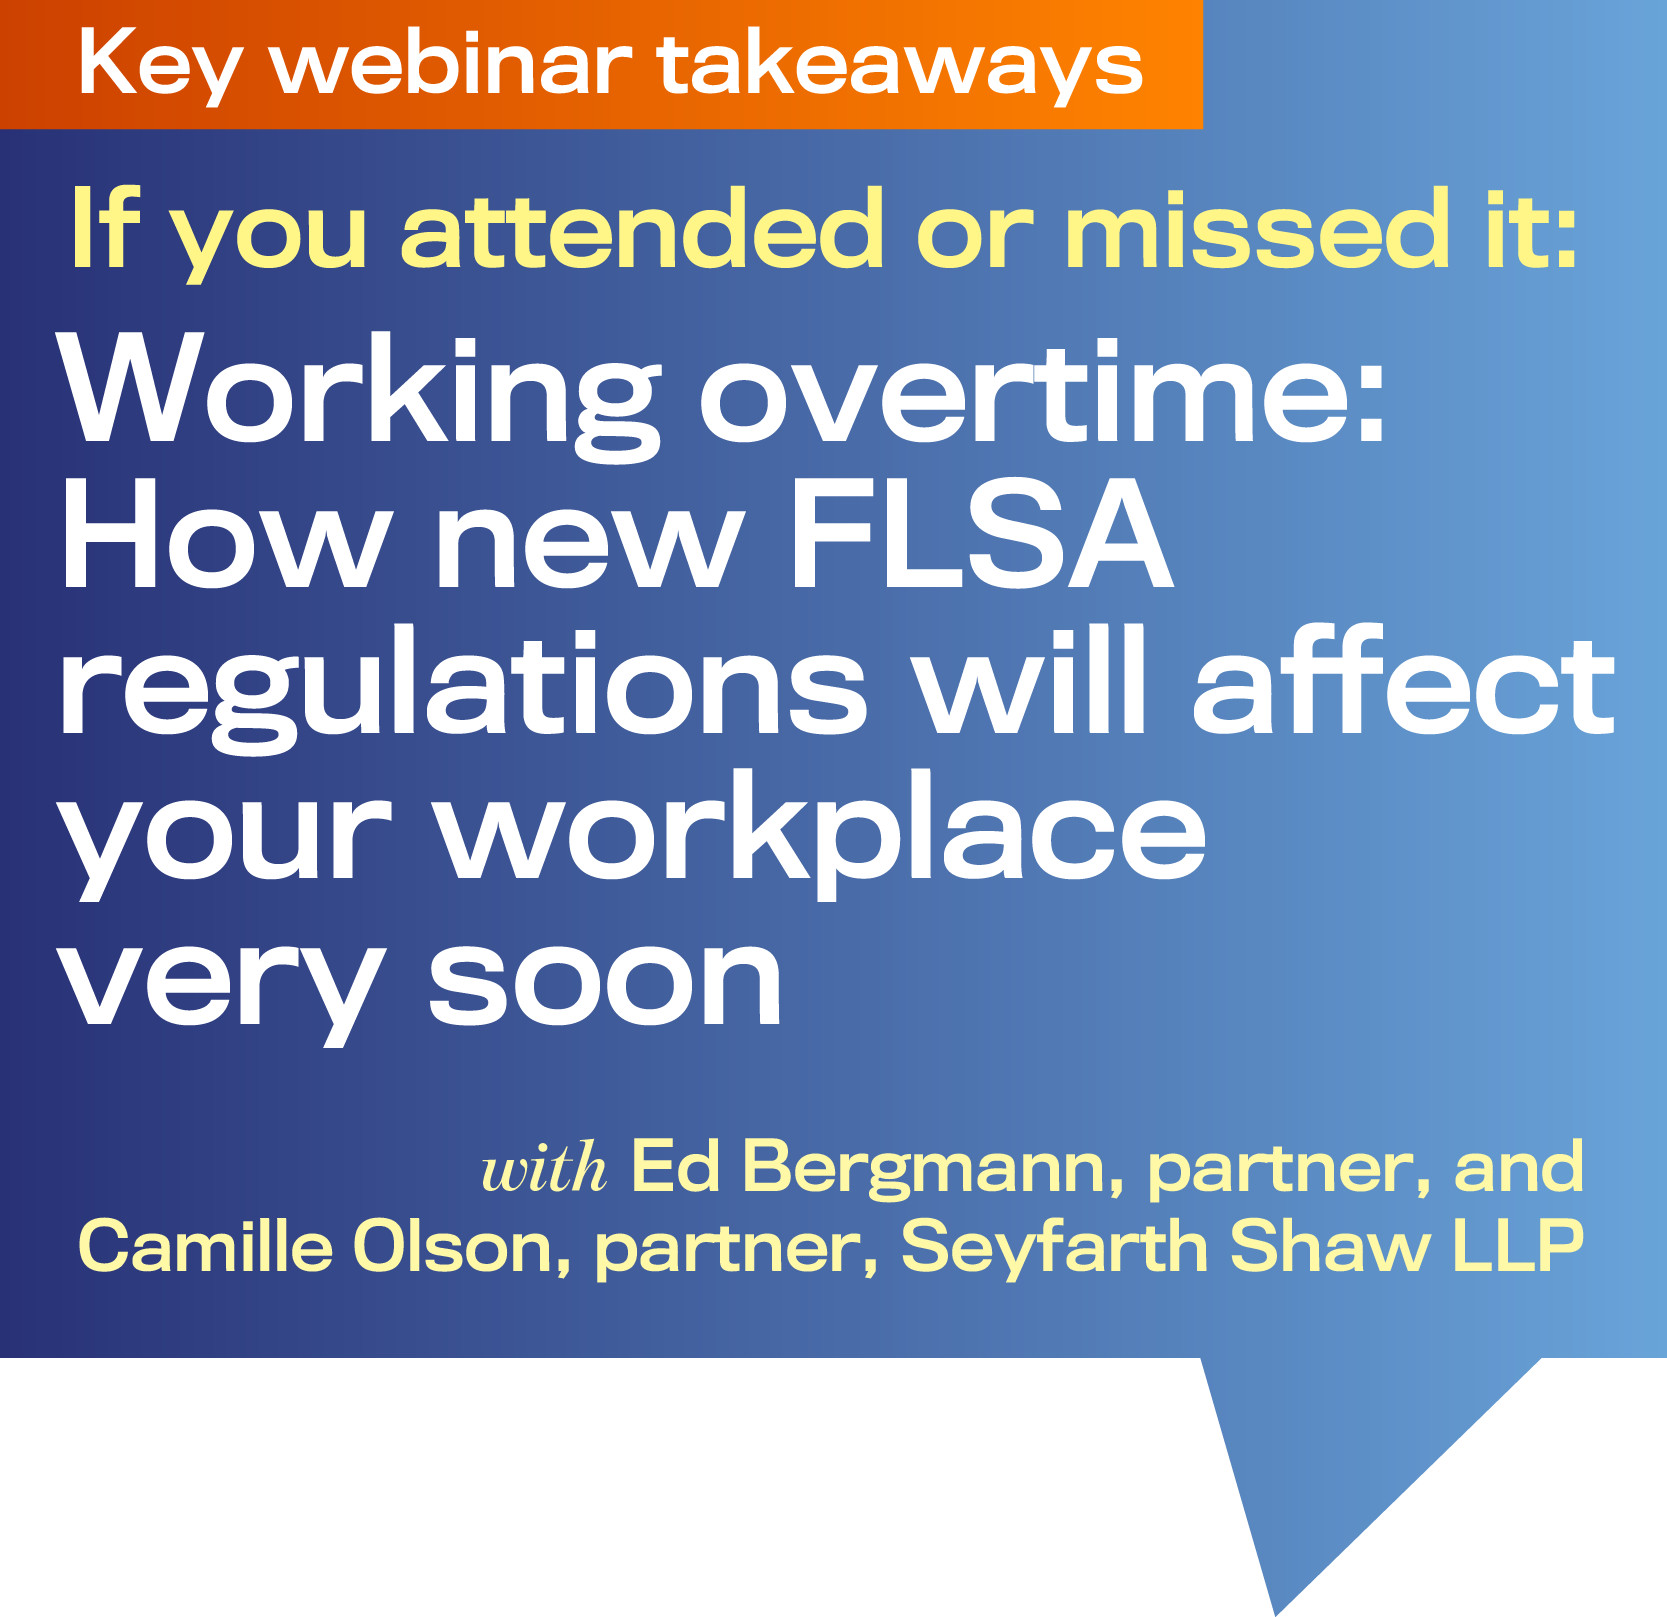 Working overtime: How new FLSA regulations will affect your workplace very soon